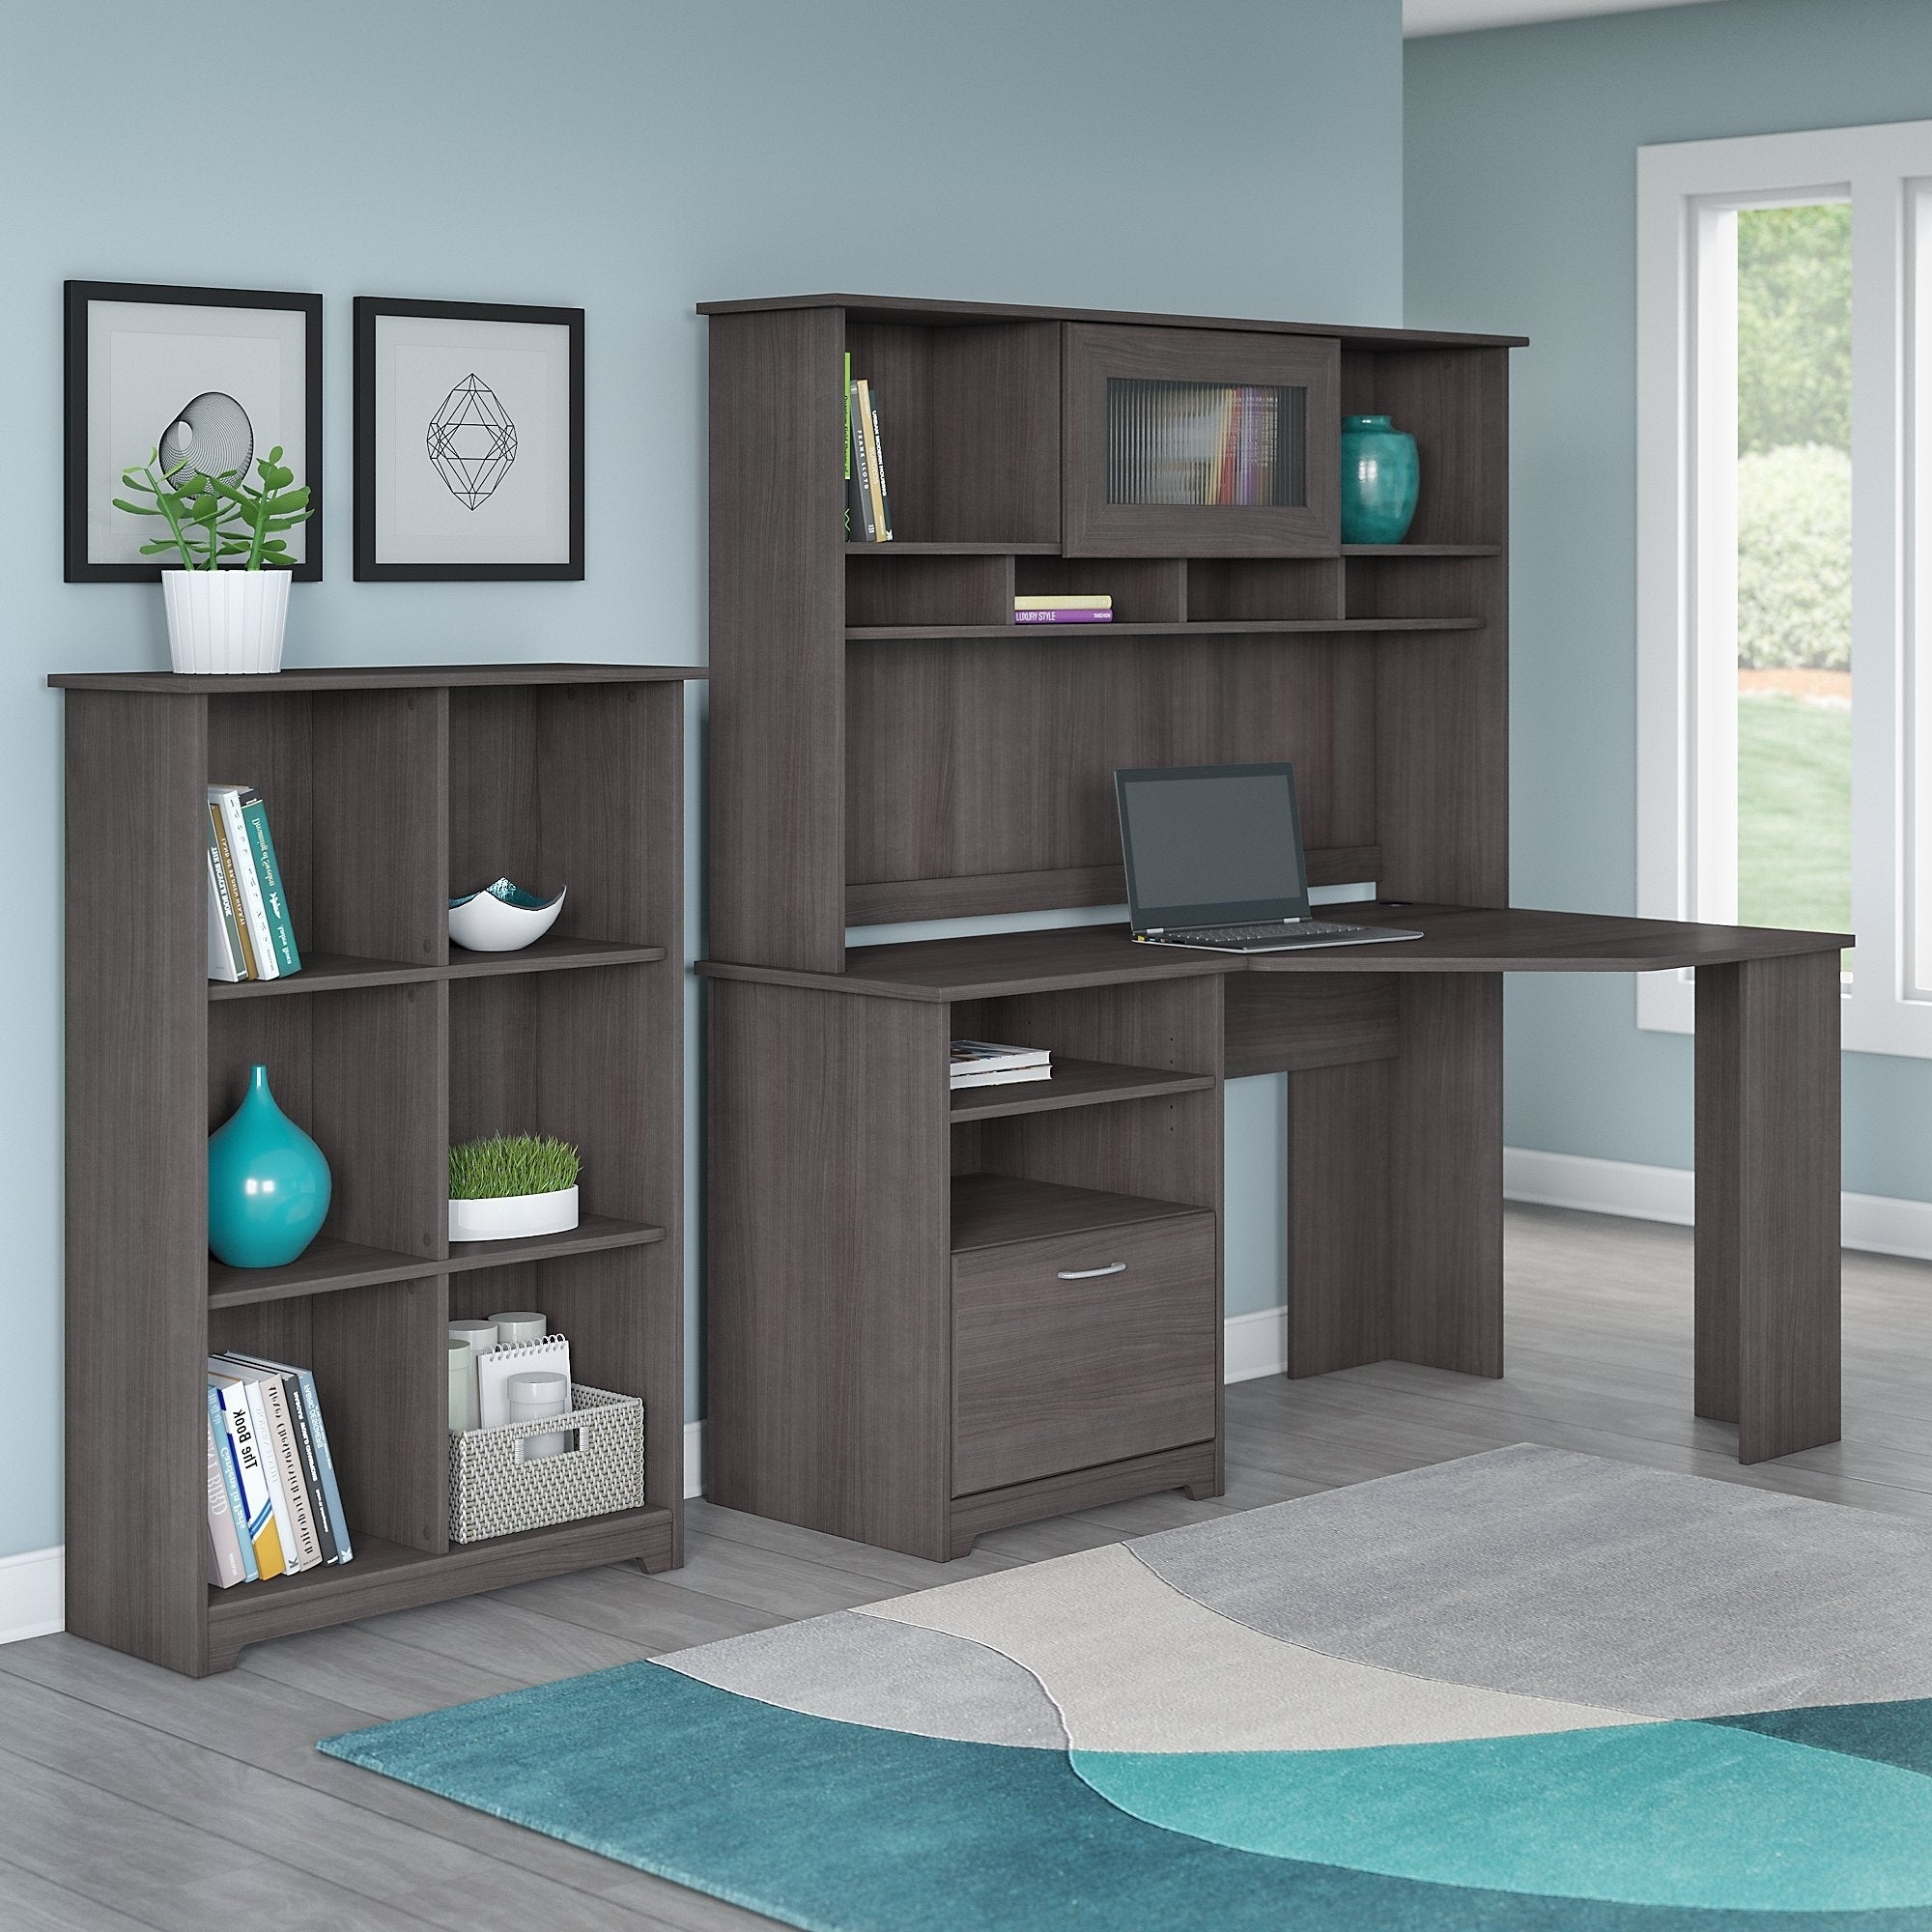 Cabot Corner Desk With Hutch And 6 Cube Bookcase Free Shipping Today 10812068